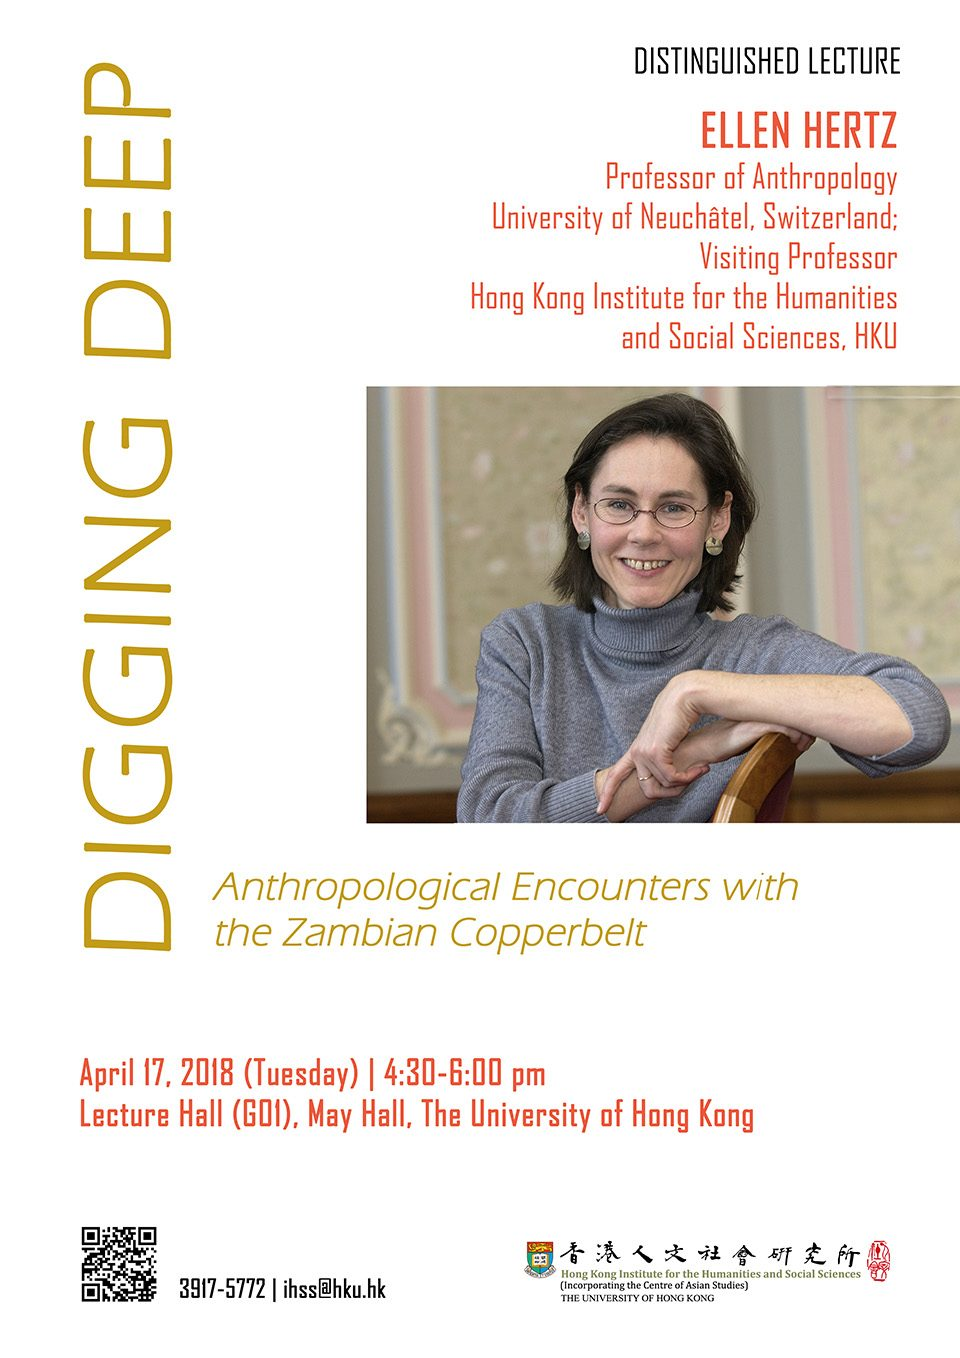 "Distinguished Lecture on ""Digging Deep: Anthropological Encounters with the Zambian Copperbelt"" by Professor Ellen Hertz (April 17, 2018)"